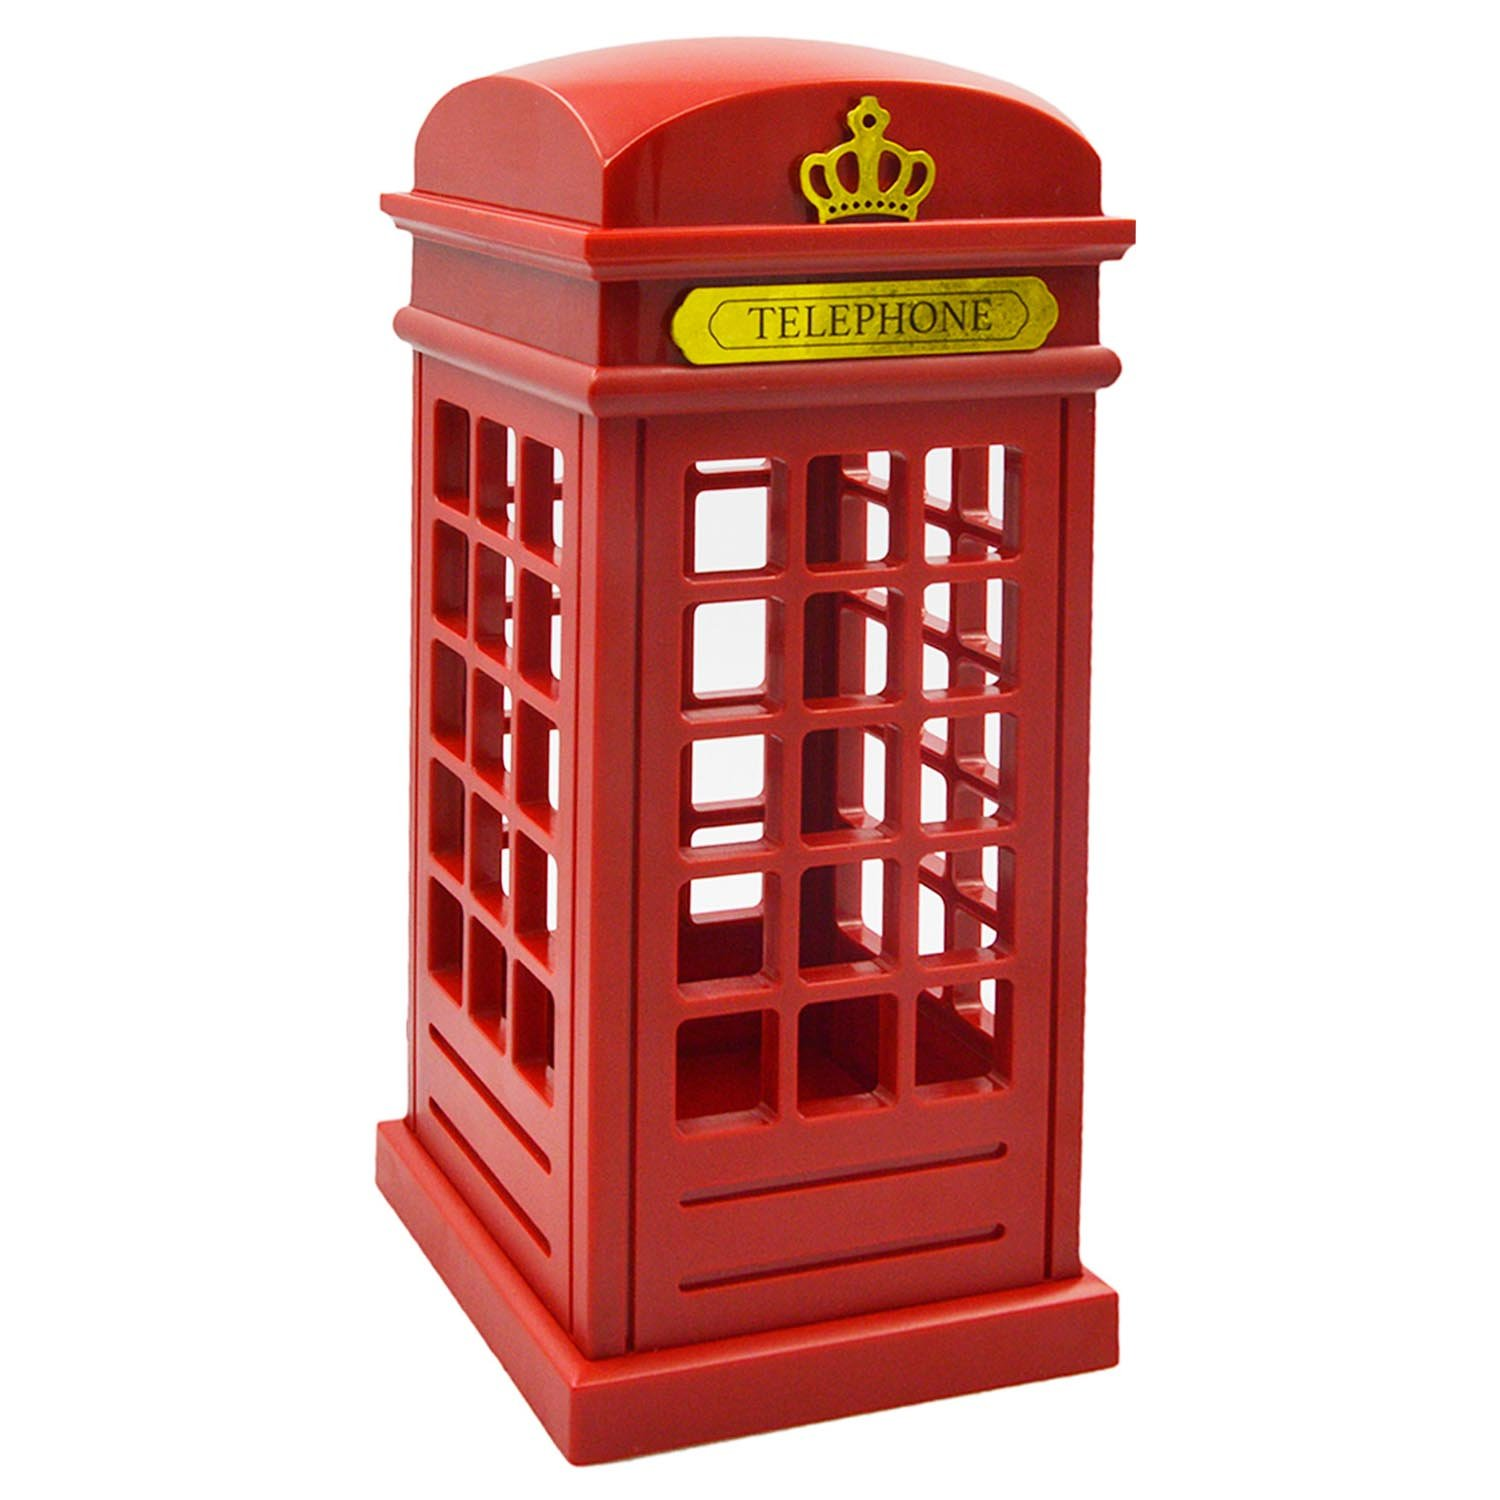 Vintage London Telephone Booth Designed USB Charging LED Night Lamp Touch Sensor Table Desk Light for Bedroom Students Dormitory Illumination Home Bar Decoration Novelty Birthday Adjustable Brightness by Artyea